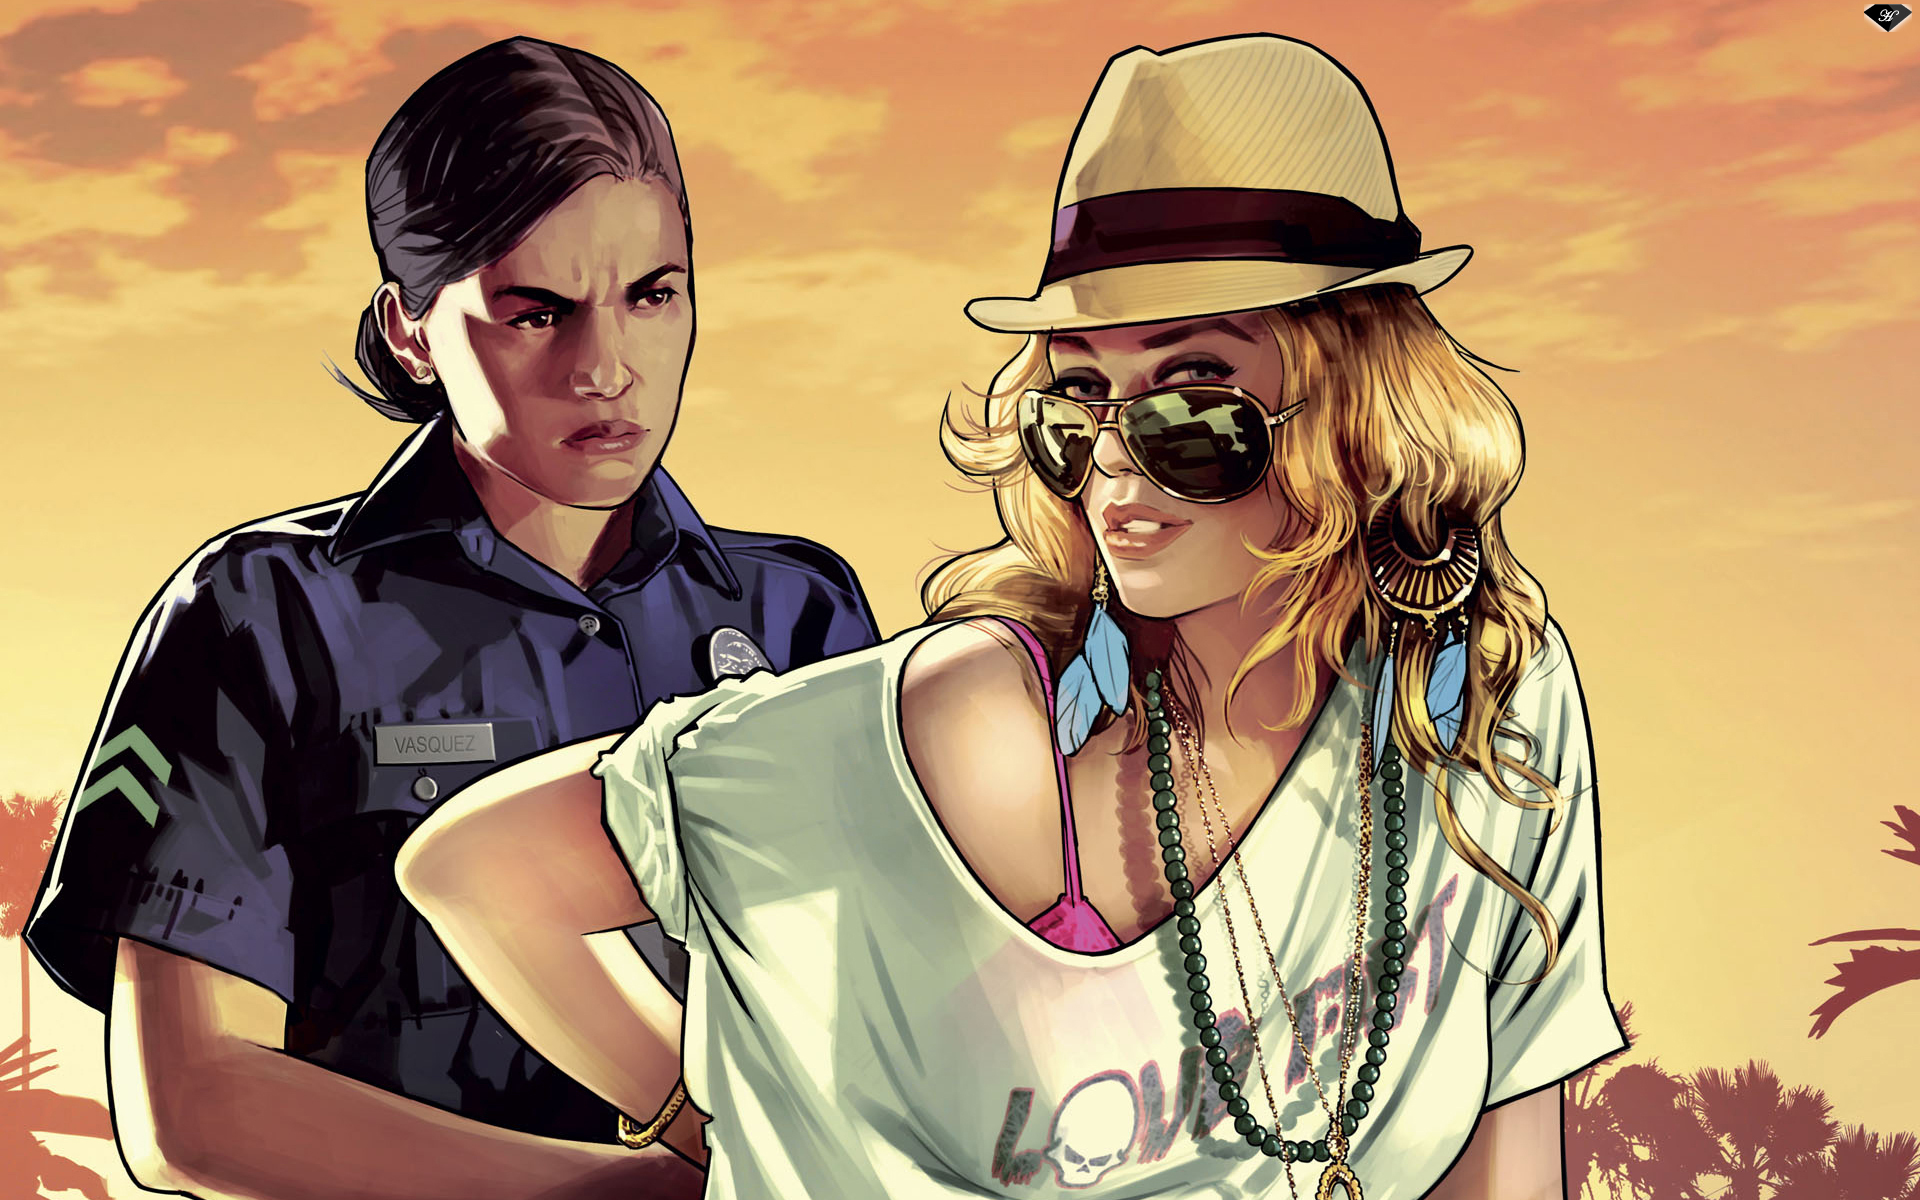 GTA 5 Online Class-Action Lawsuit is Dismissed